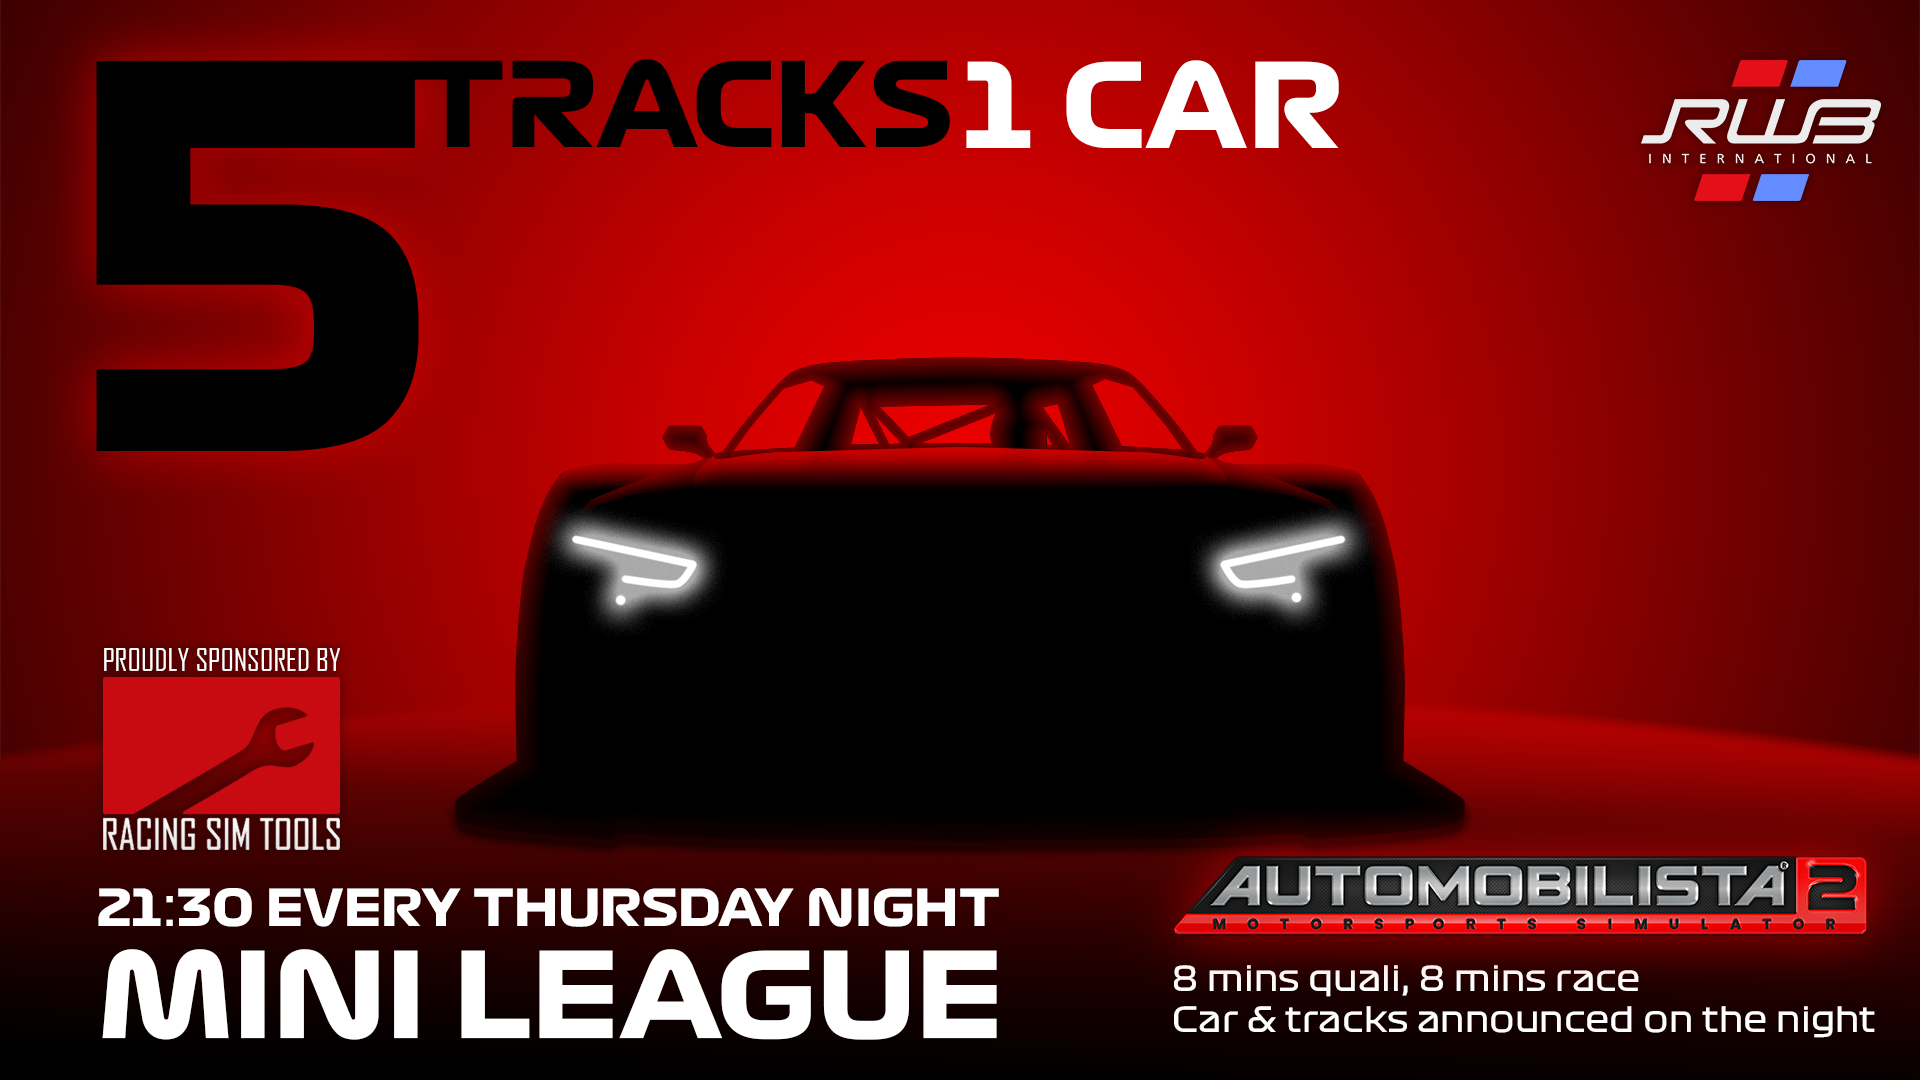 Automobilista 2 Mini League